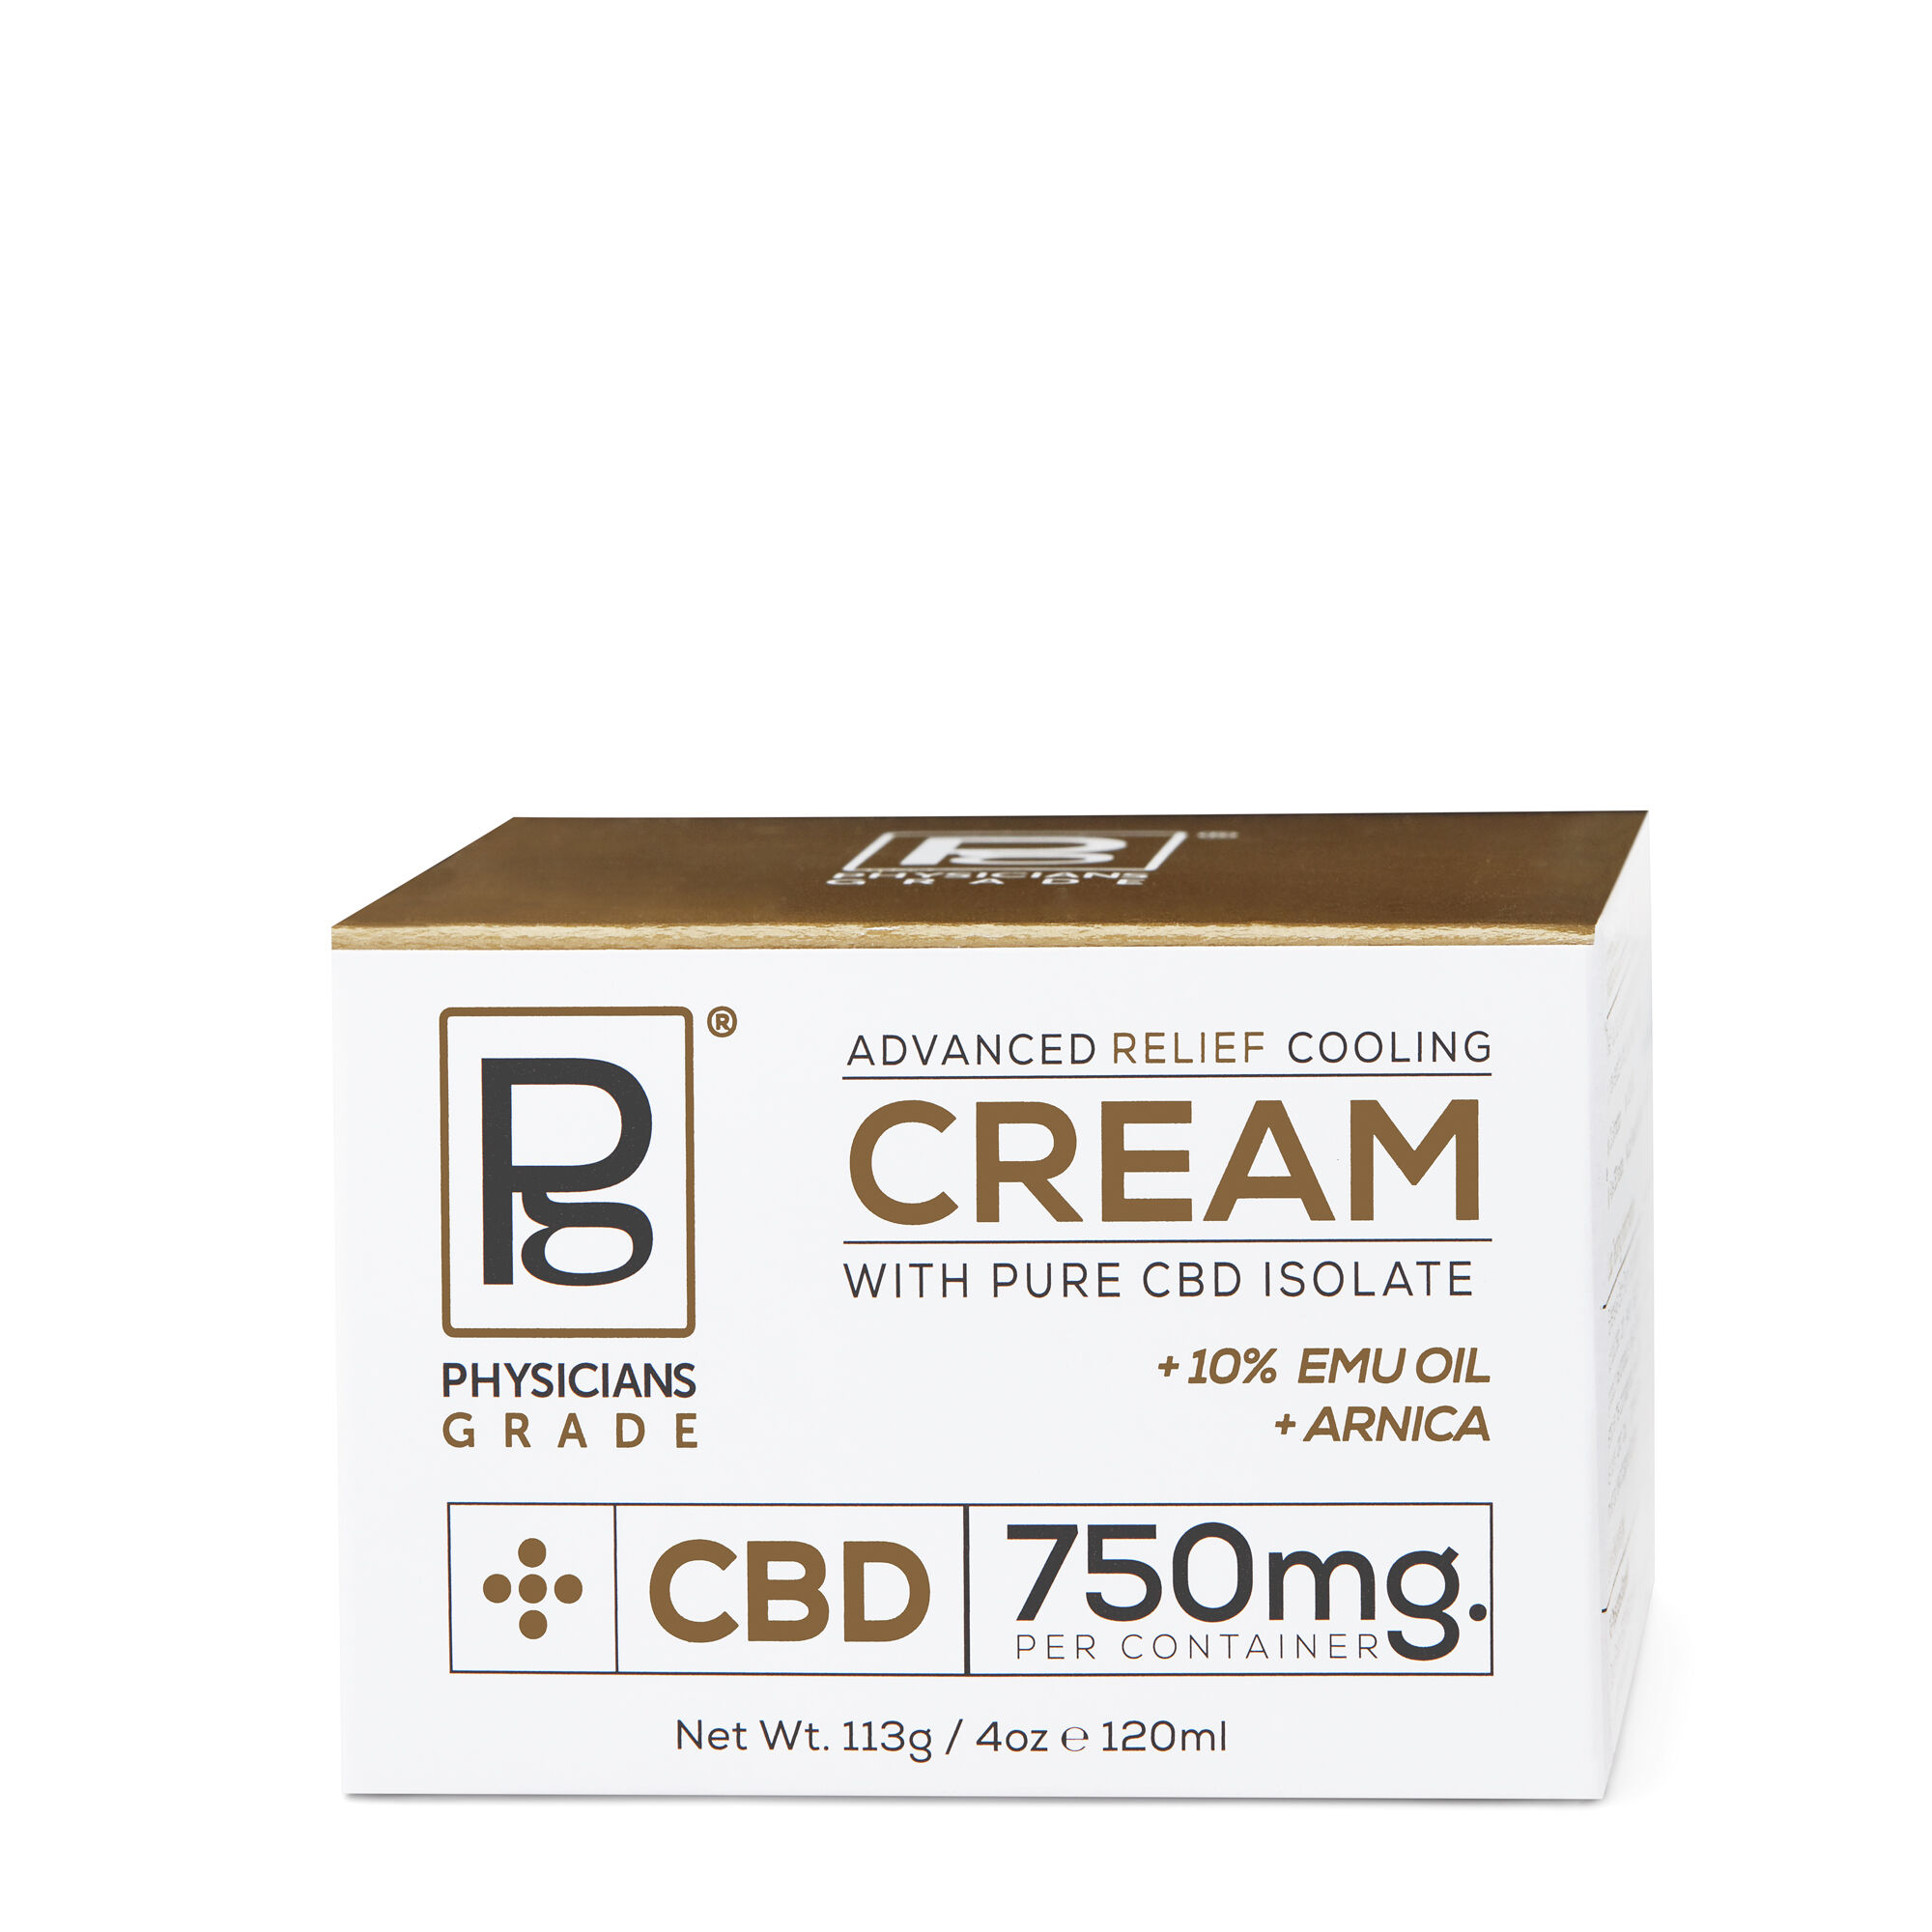 Advanced Relief Cooling Cream with Pure CBD Isolate